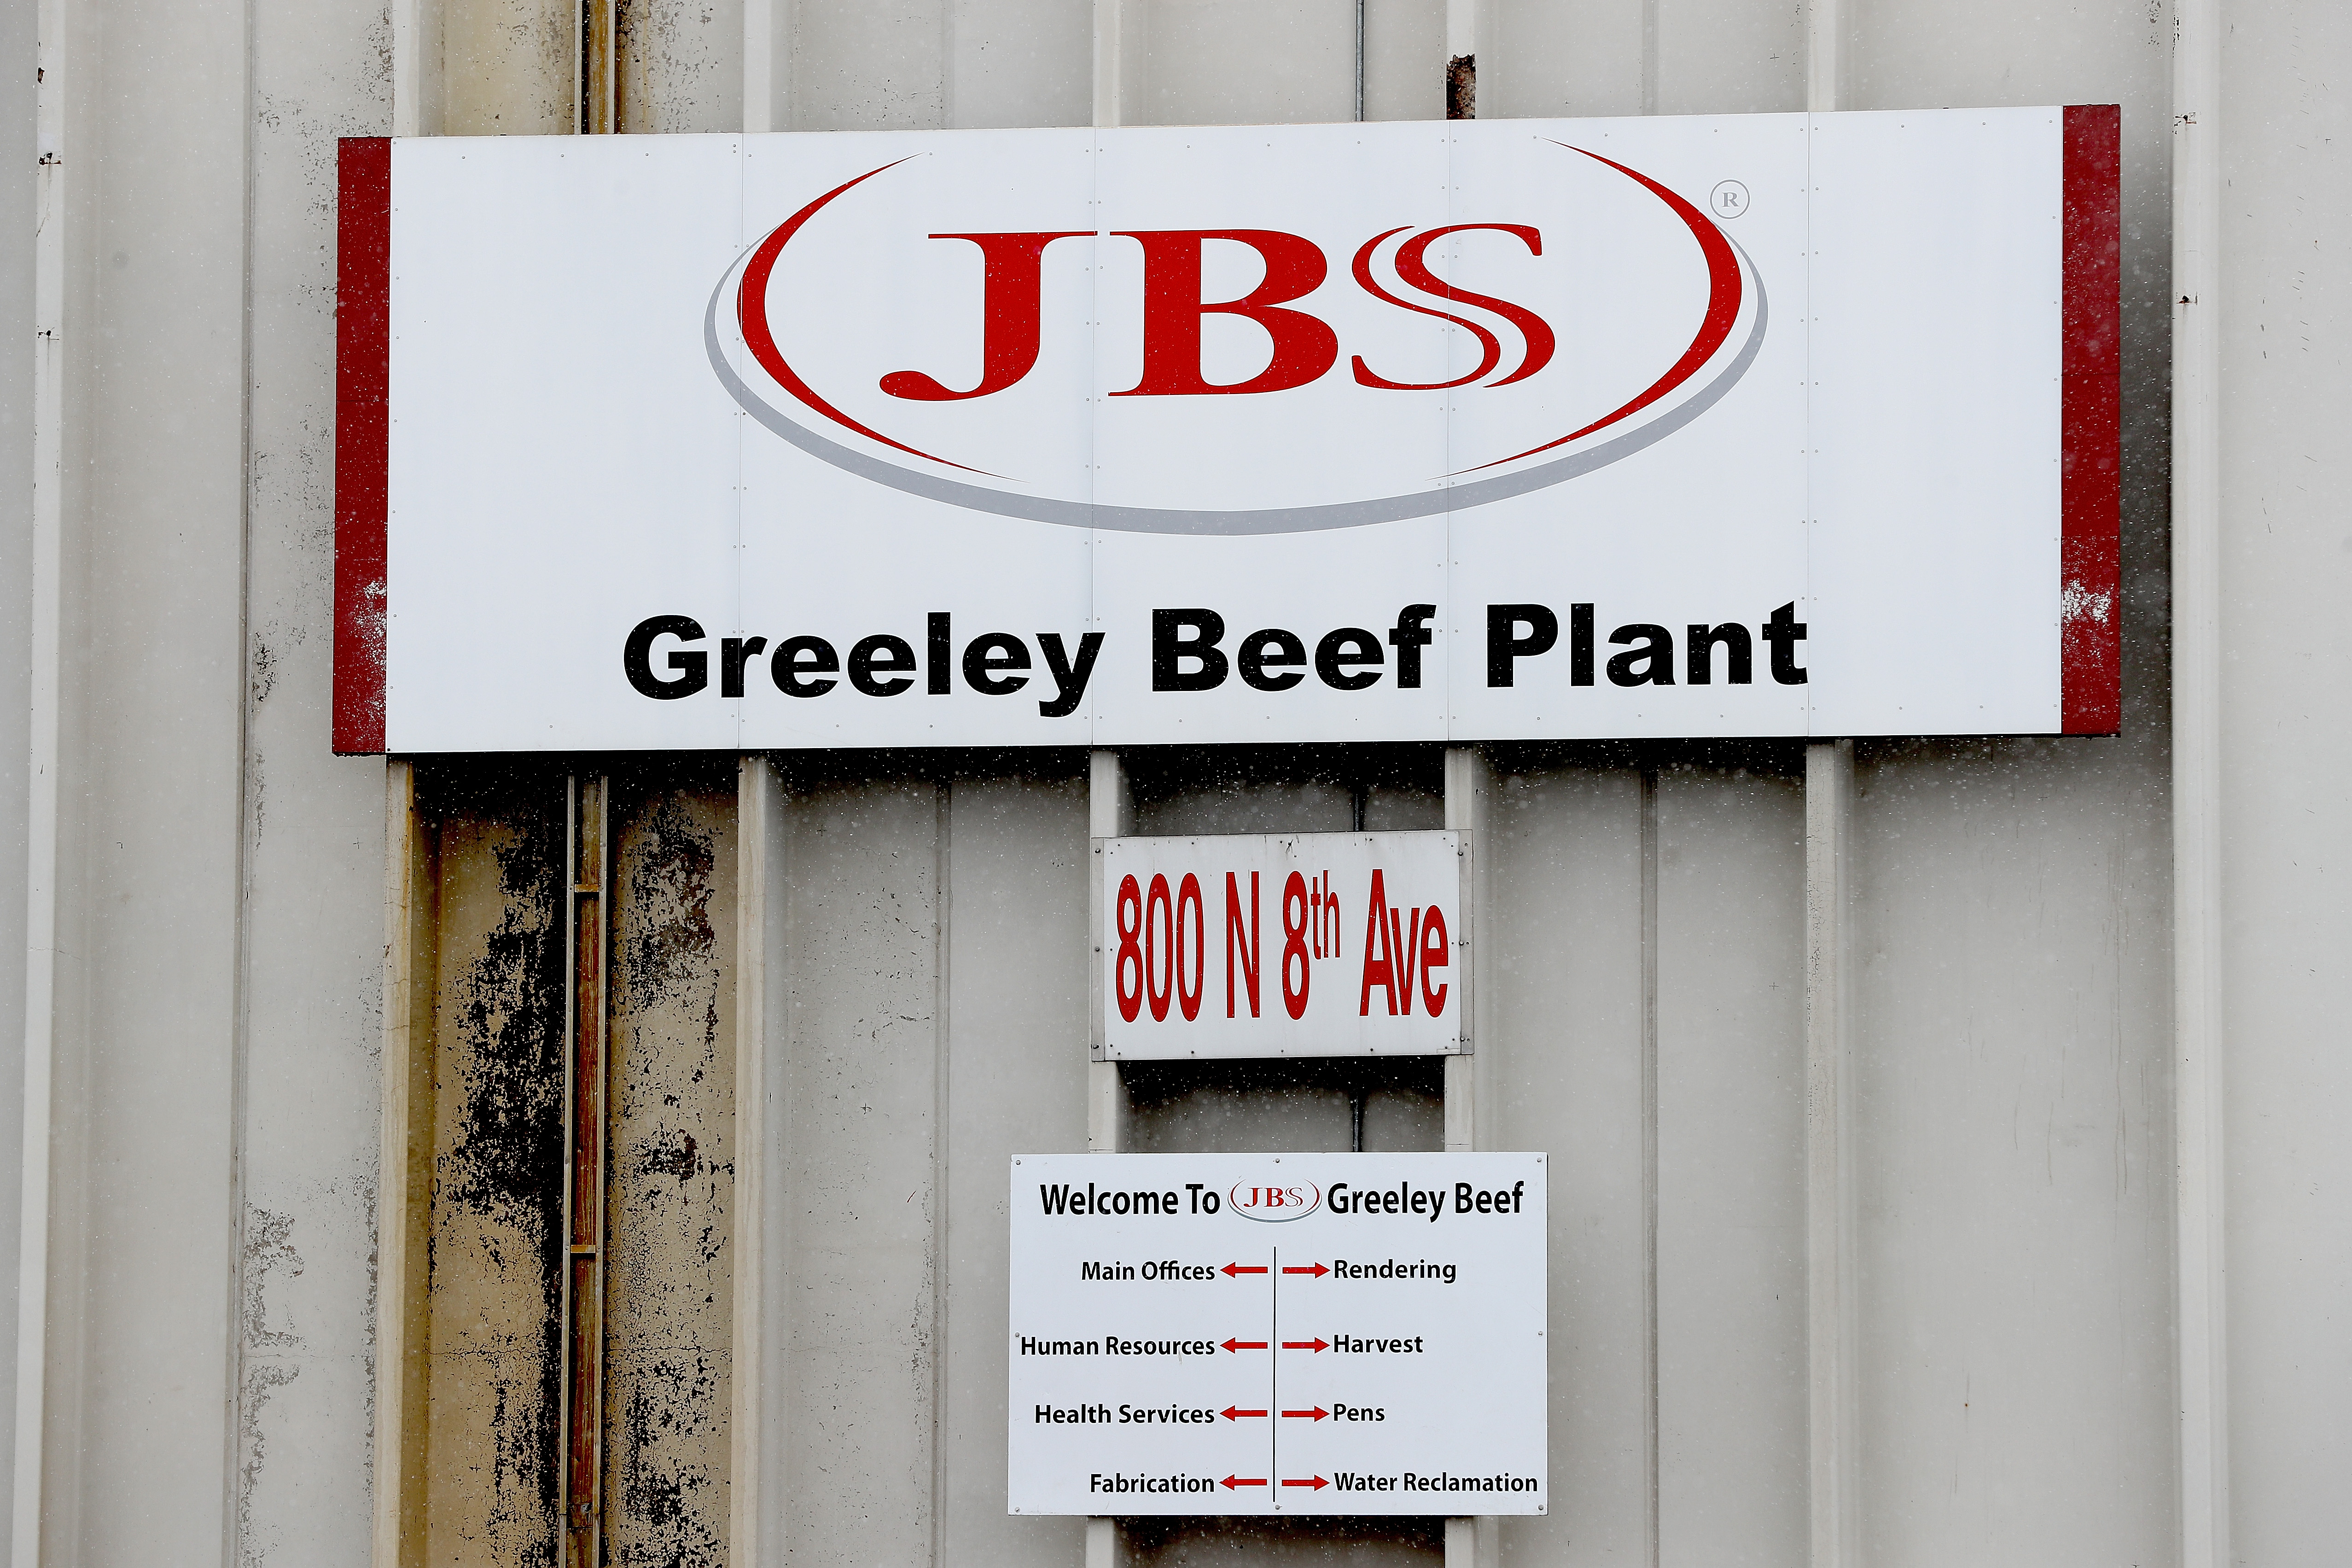 Meat supplier JBS paid $11 million to its ransomware attackers